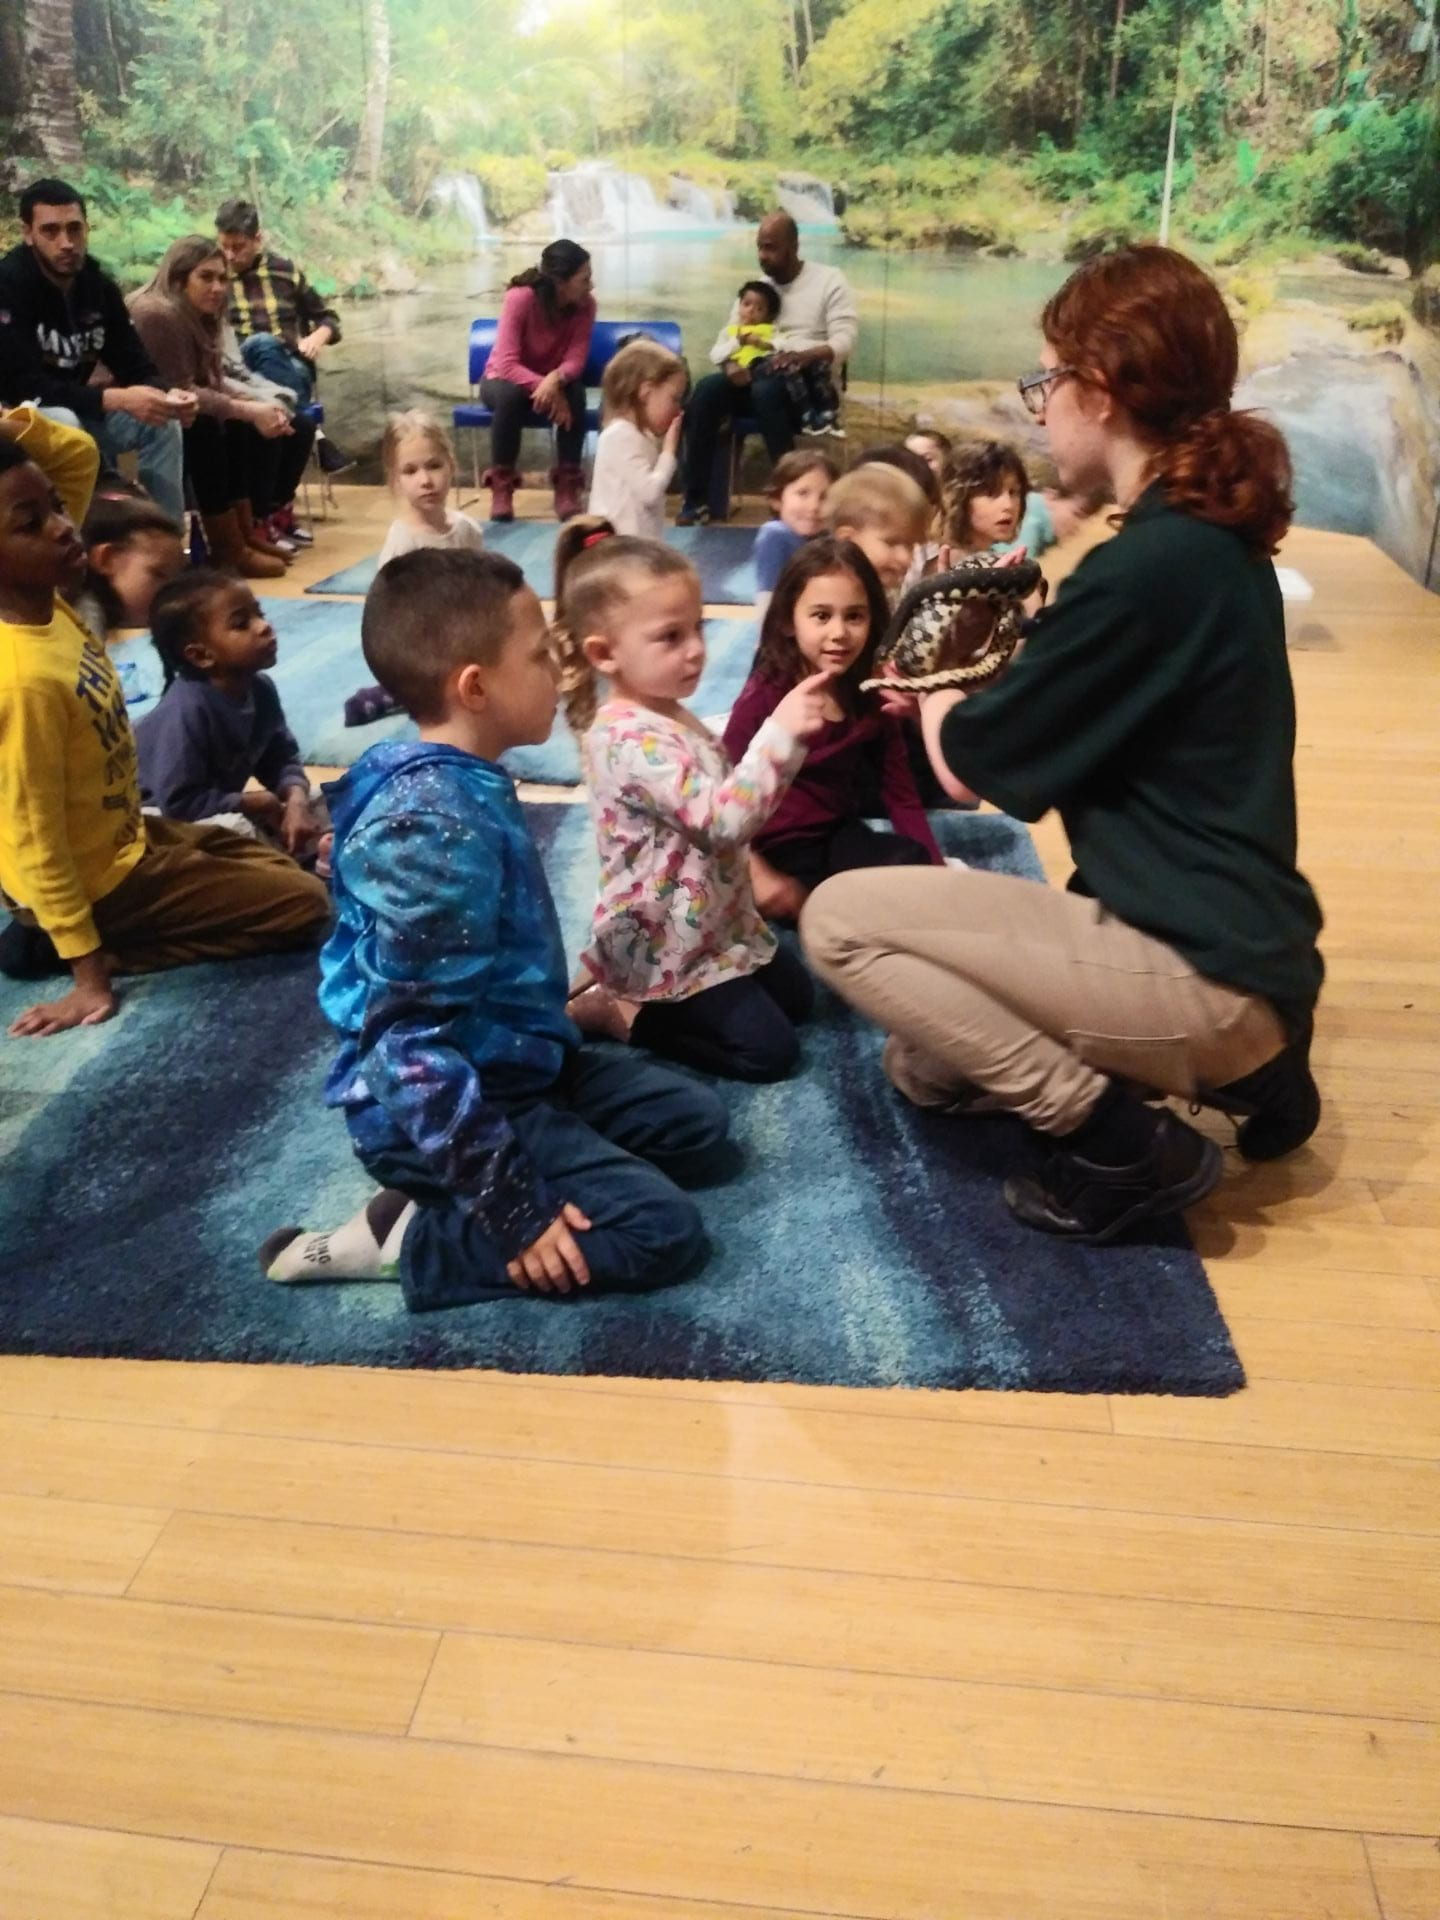 children observing a reptile at the children's museum